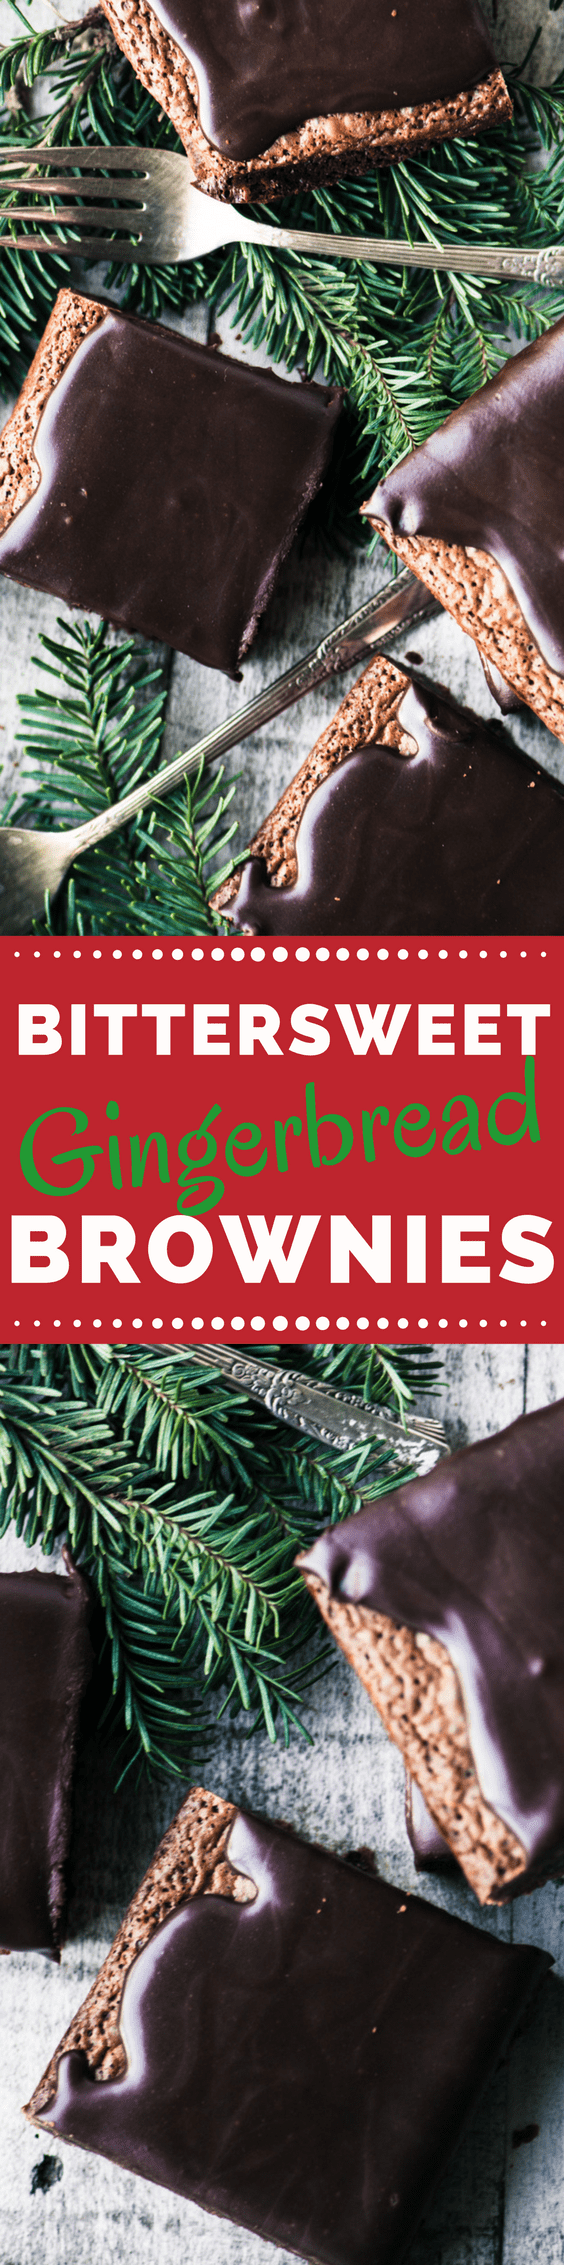 Bittersweet Gingerbread Brownies pin